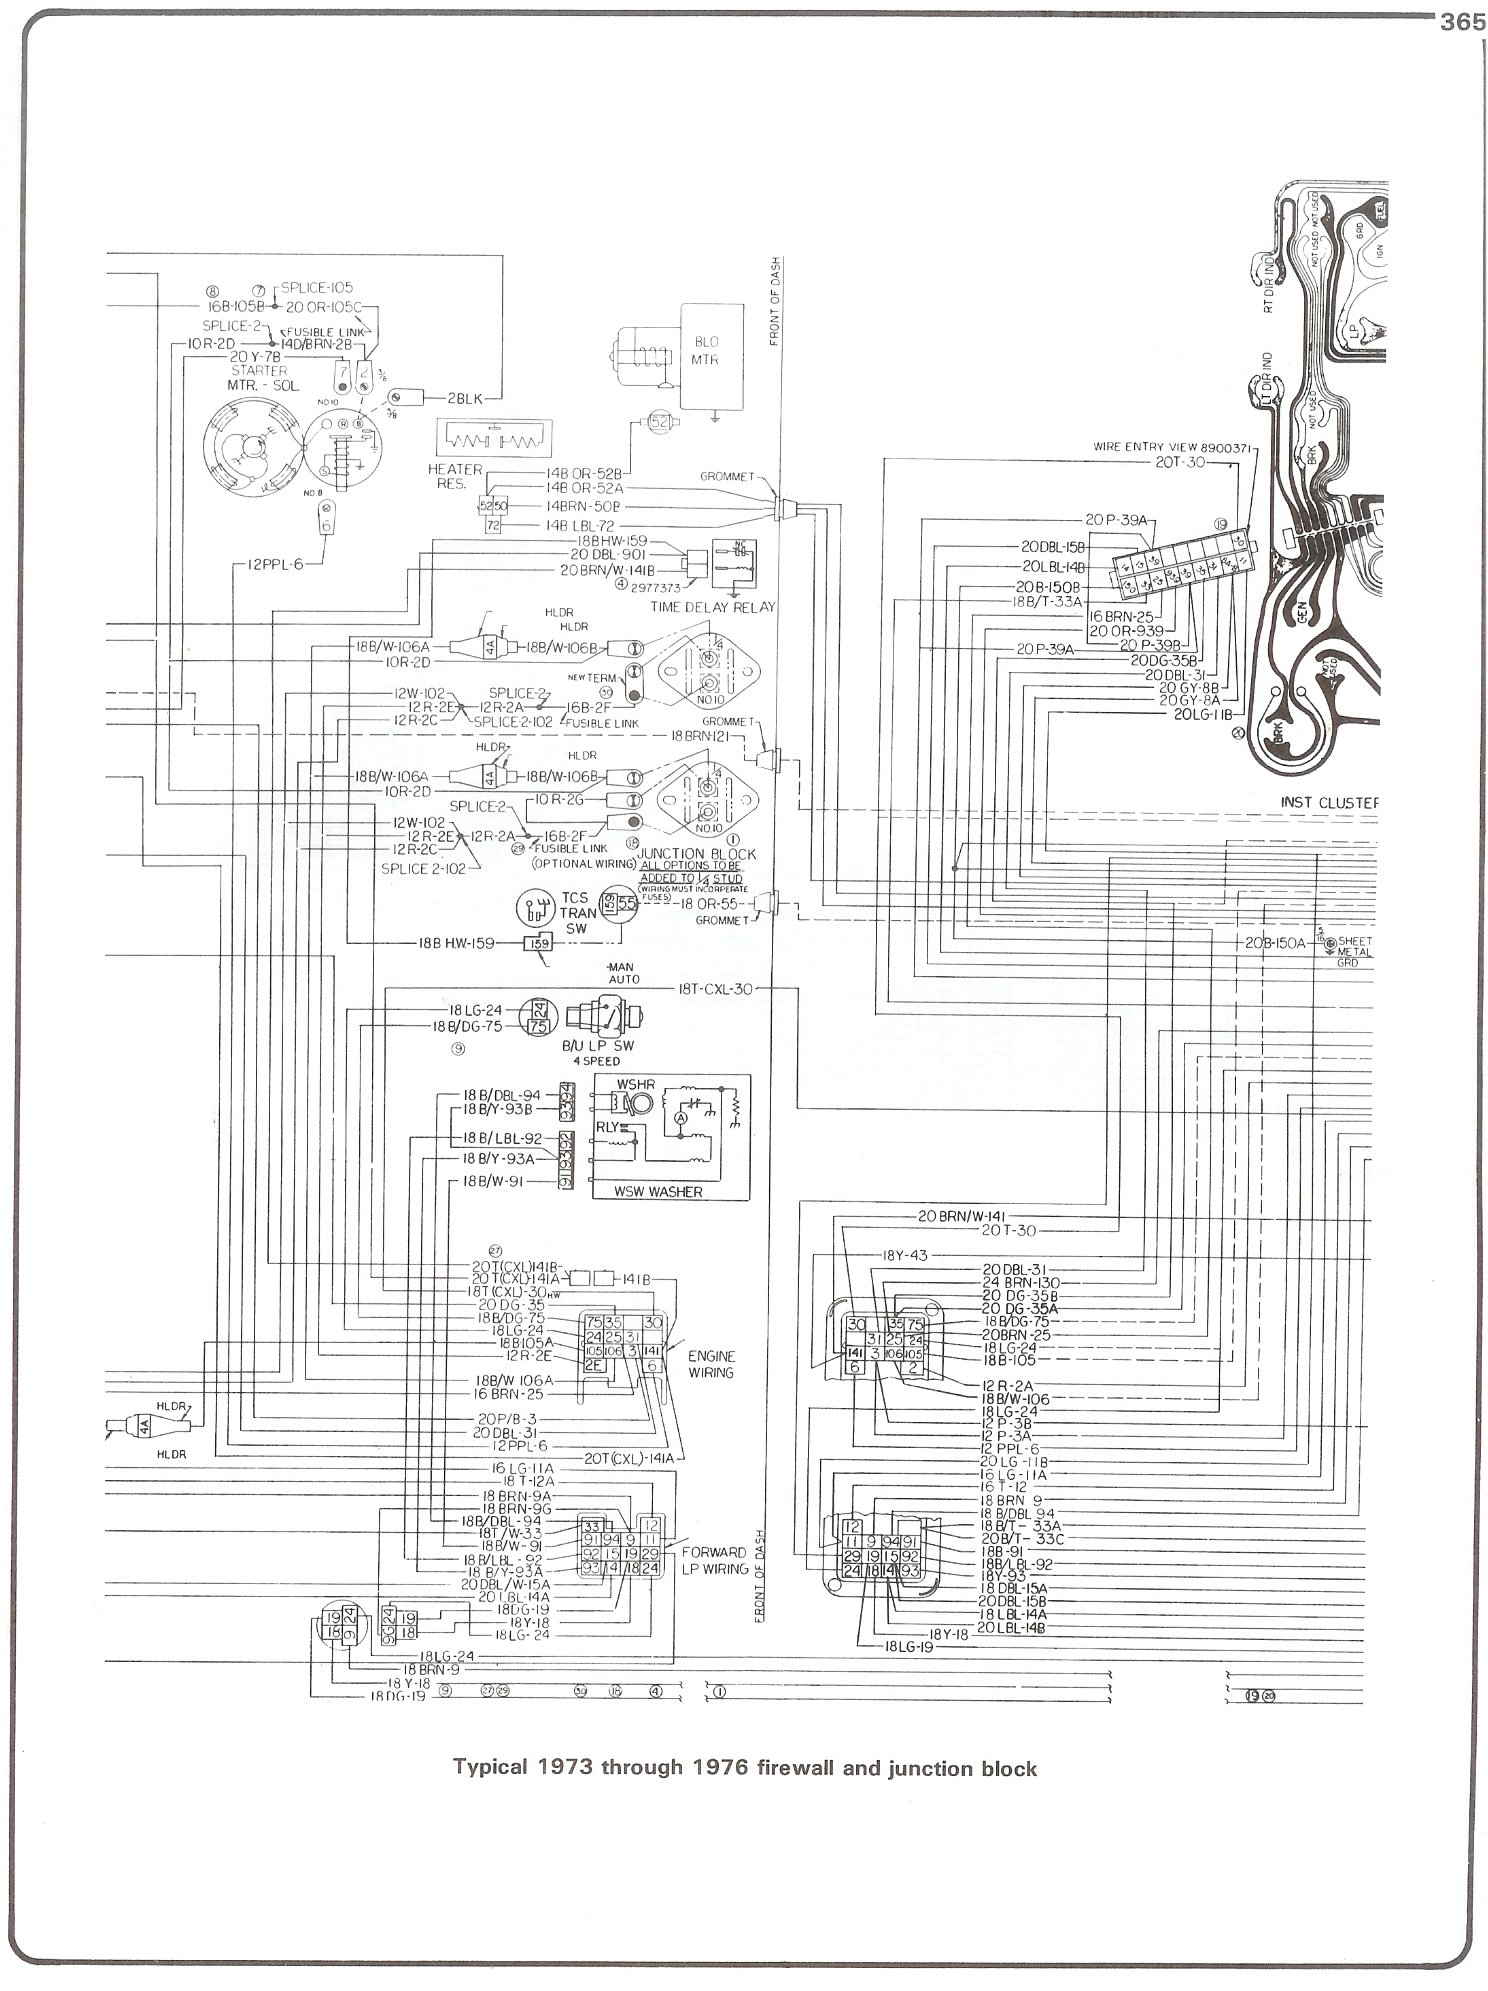 hight resolution of 2002 chevy luv fuse box wiring diagram detailed 86 chevy truck fuse box 2002 chevy luv fuse box